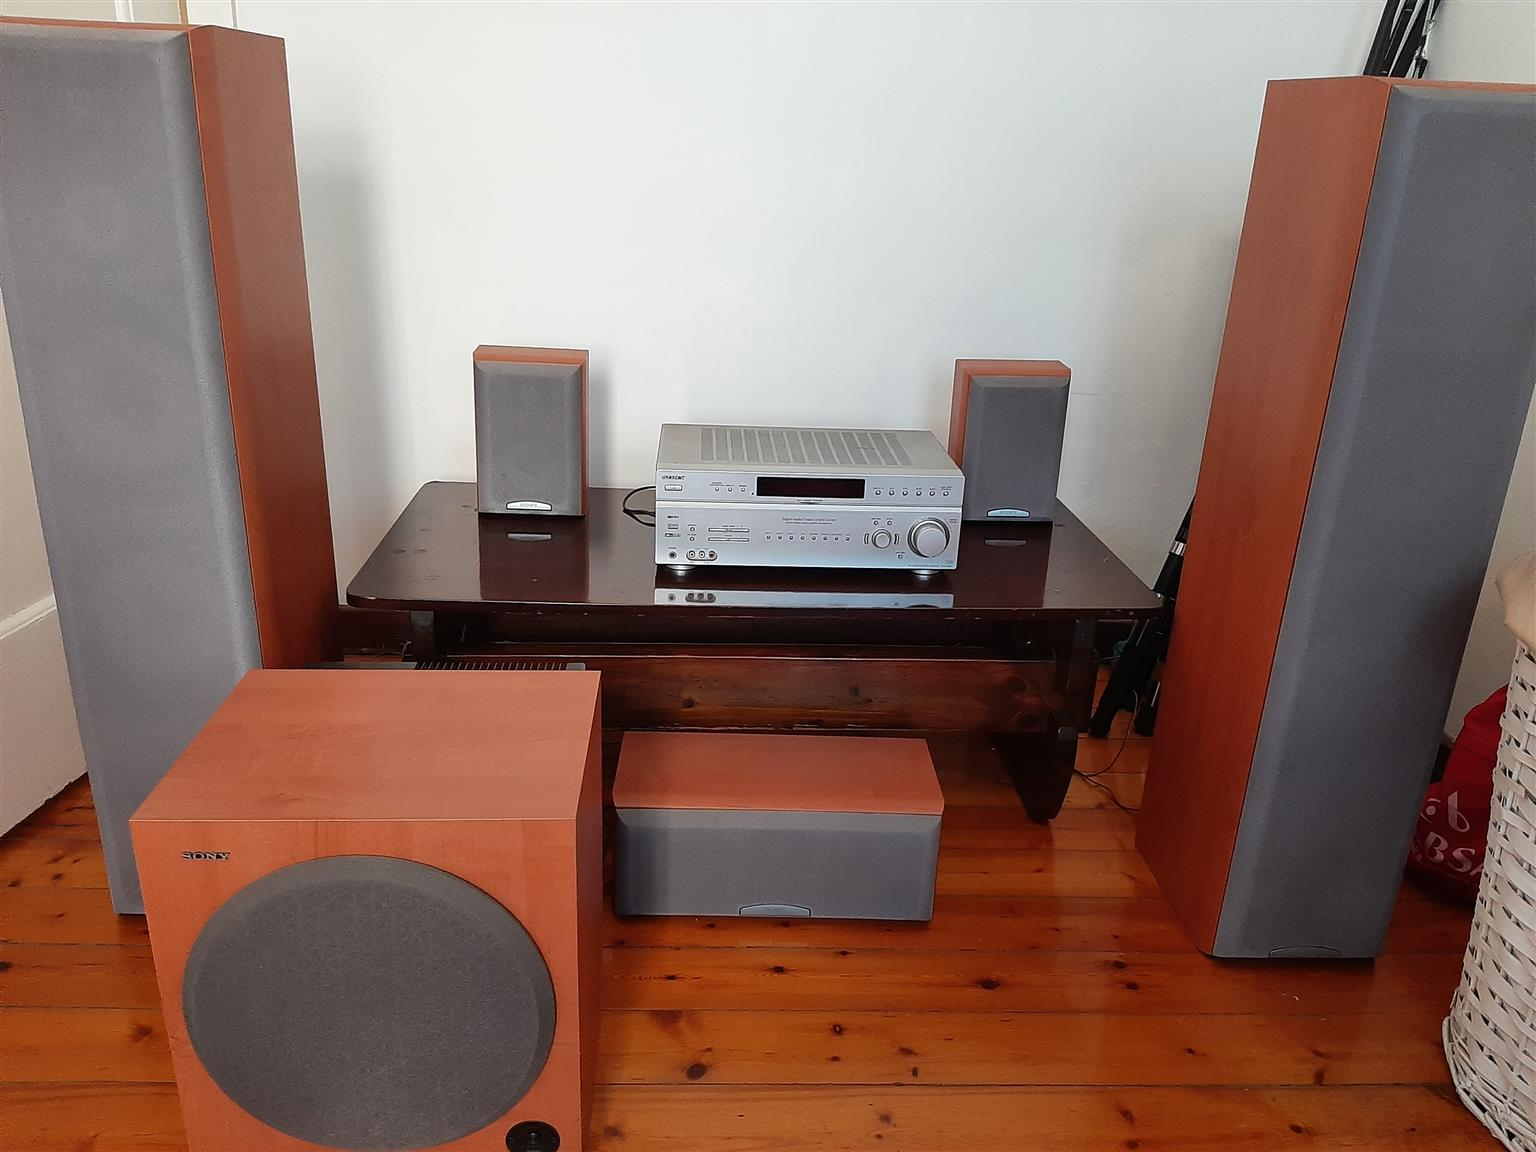 Getting rid of my Sony home theatre system.Speakers are in excellent condition